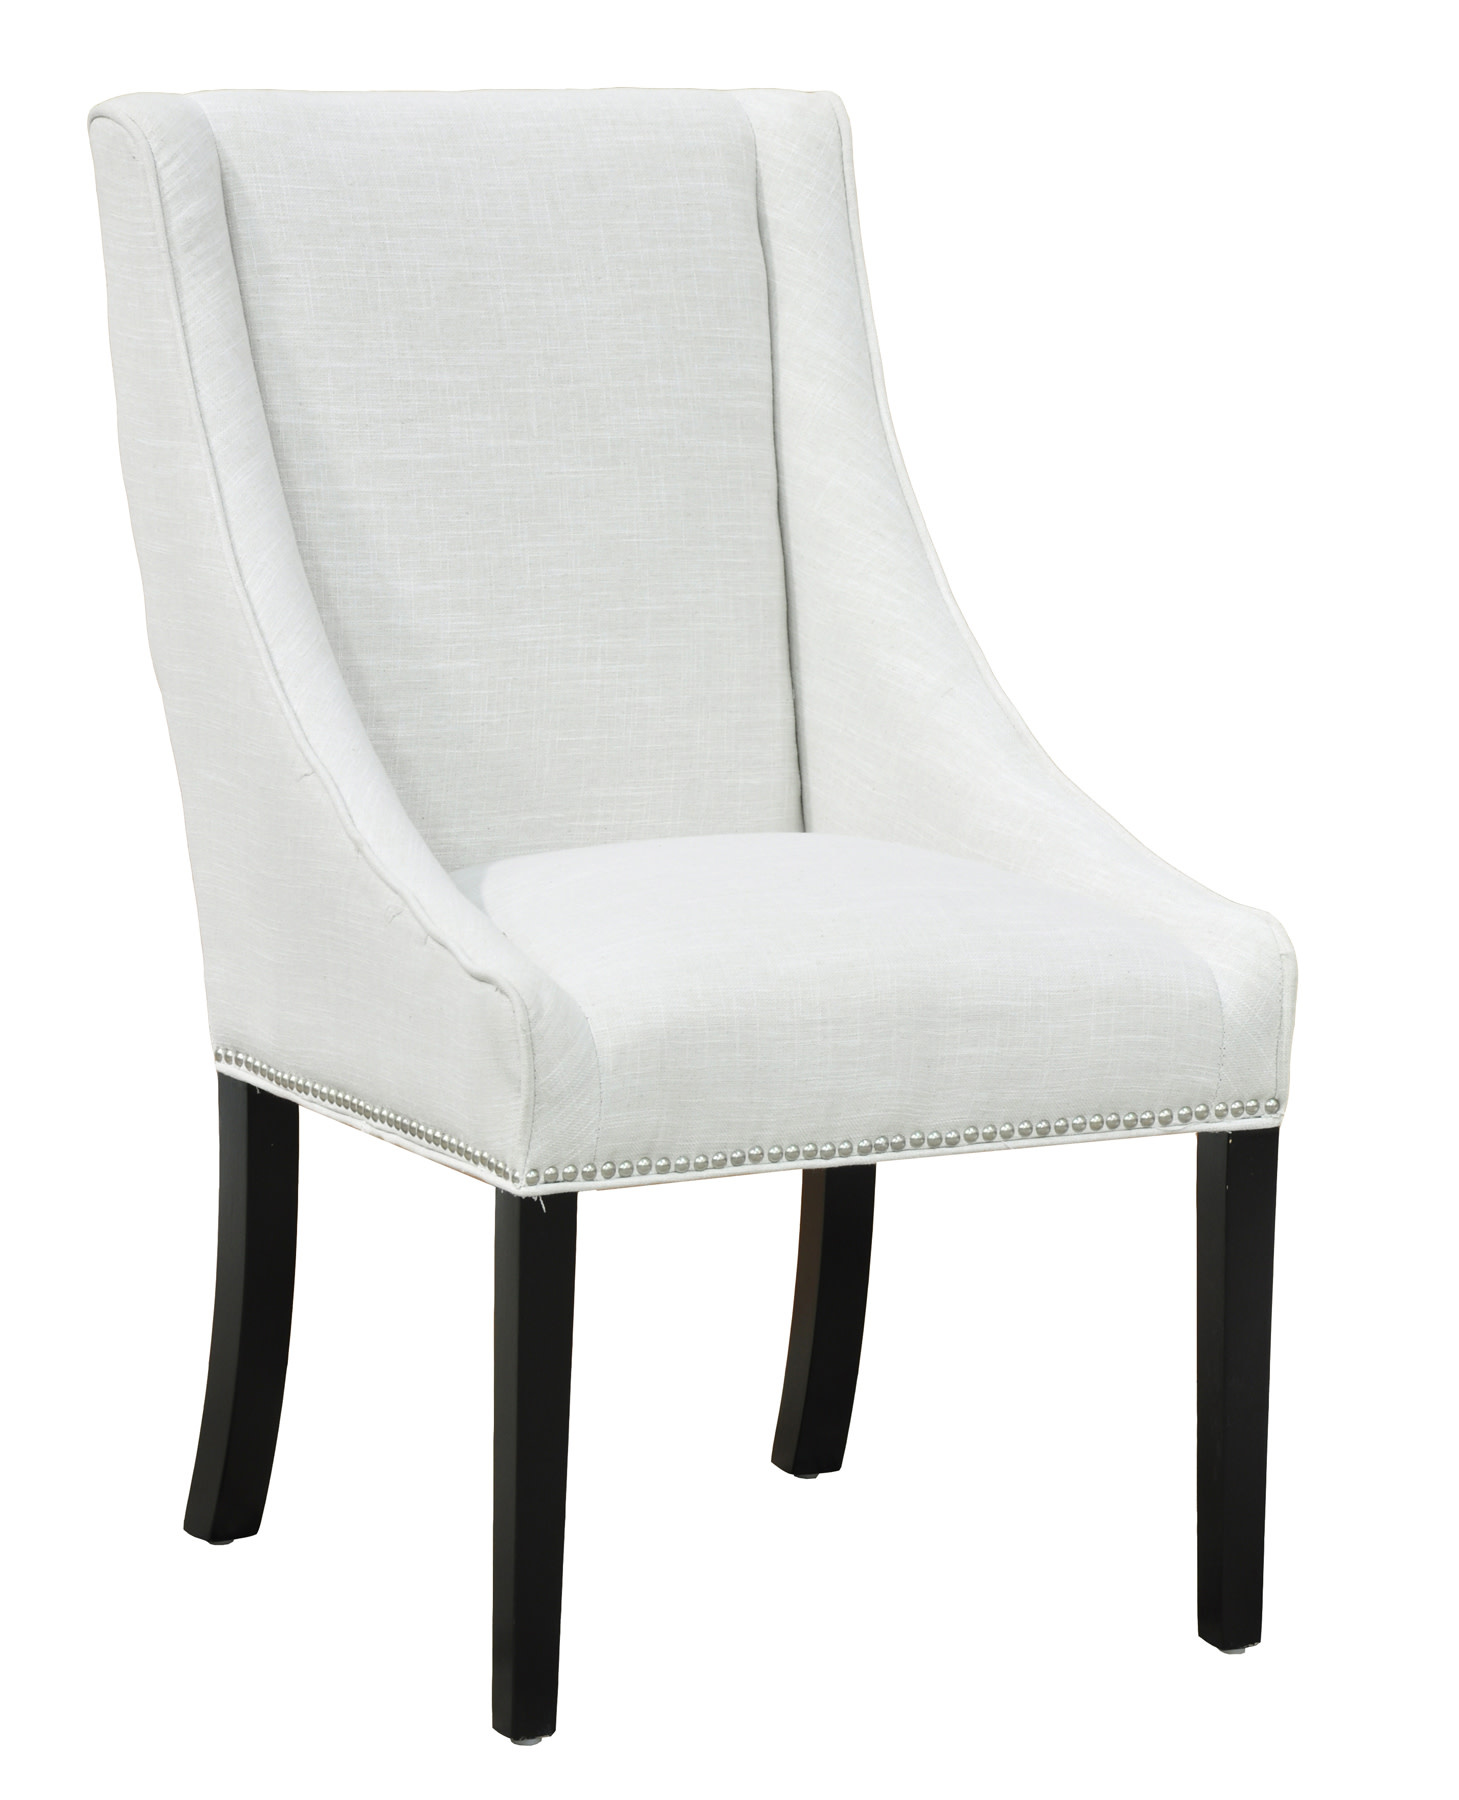 COLLINA DINING CHAIR